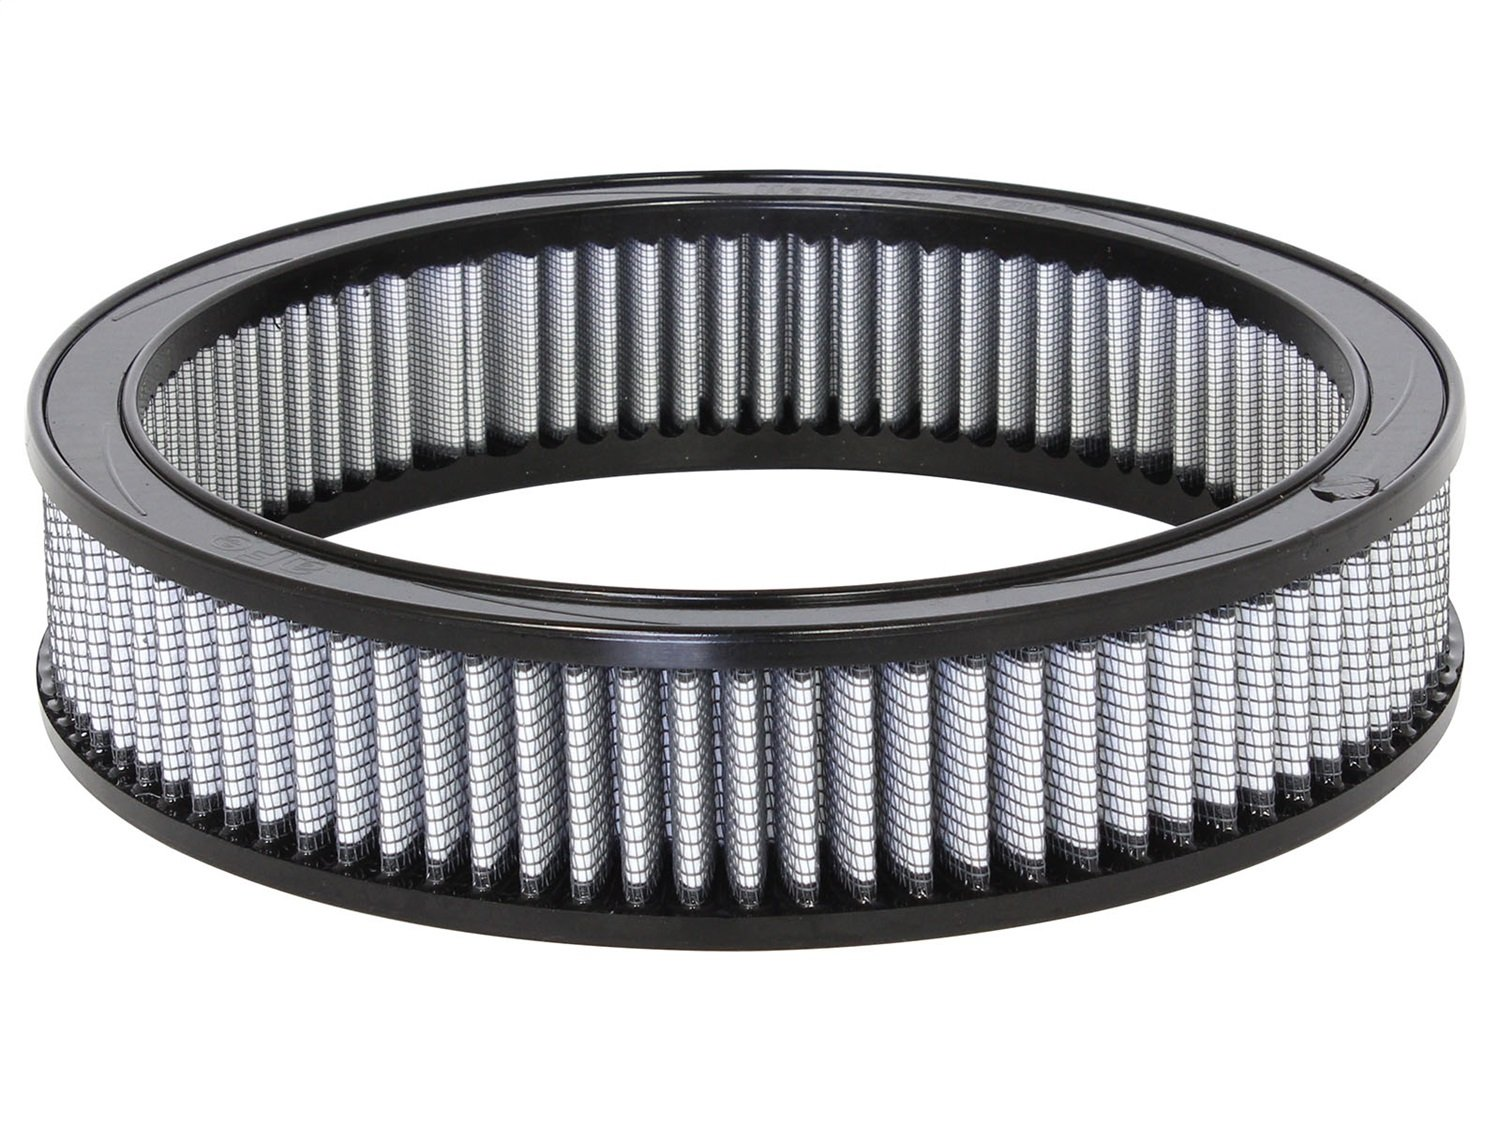 aFe 11-10074 Air Filter Advanced Flow Engineering 7278